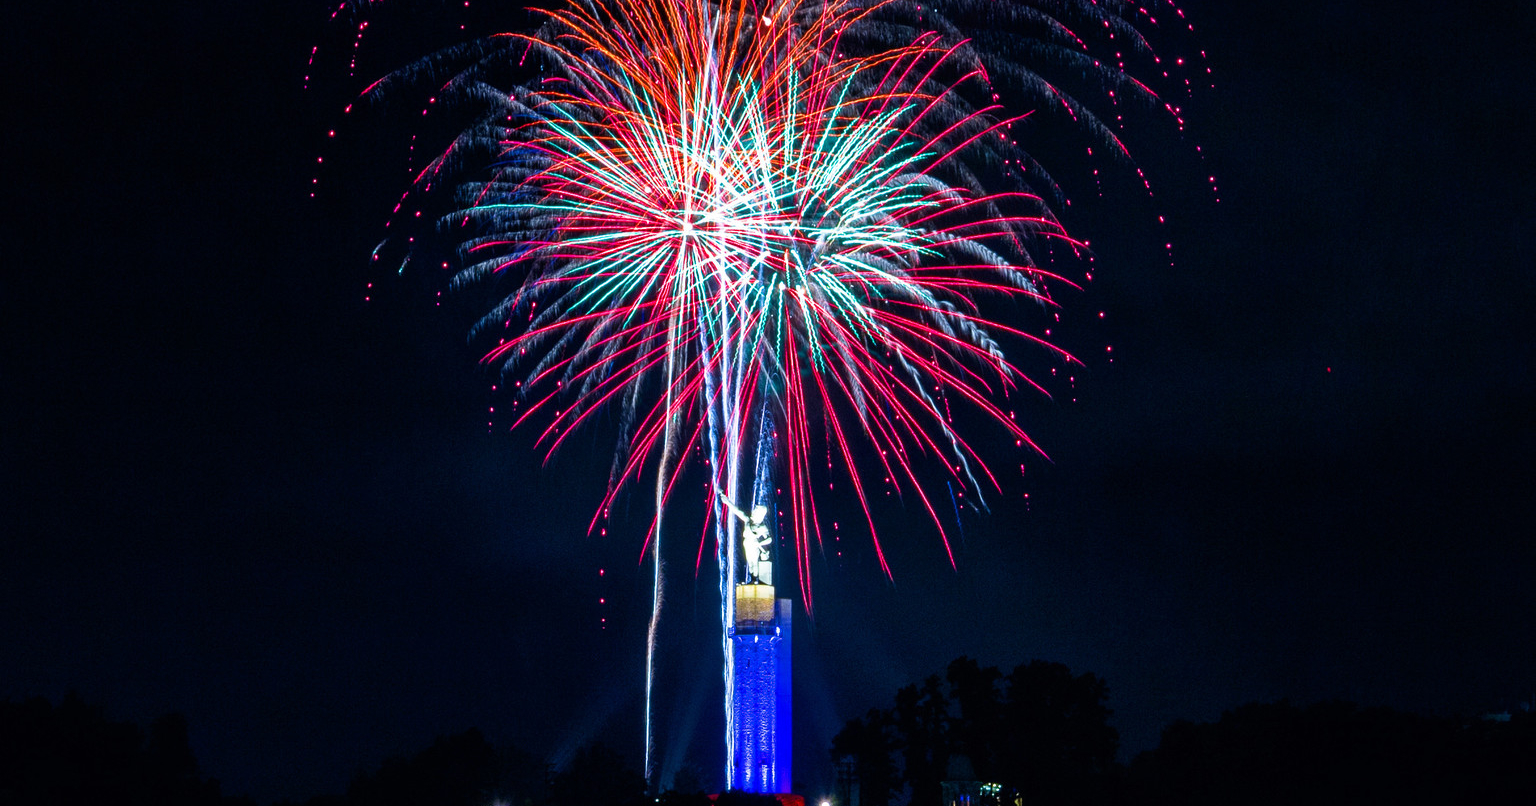 Where to see fireworks in the Birmingham area for 4th of July